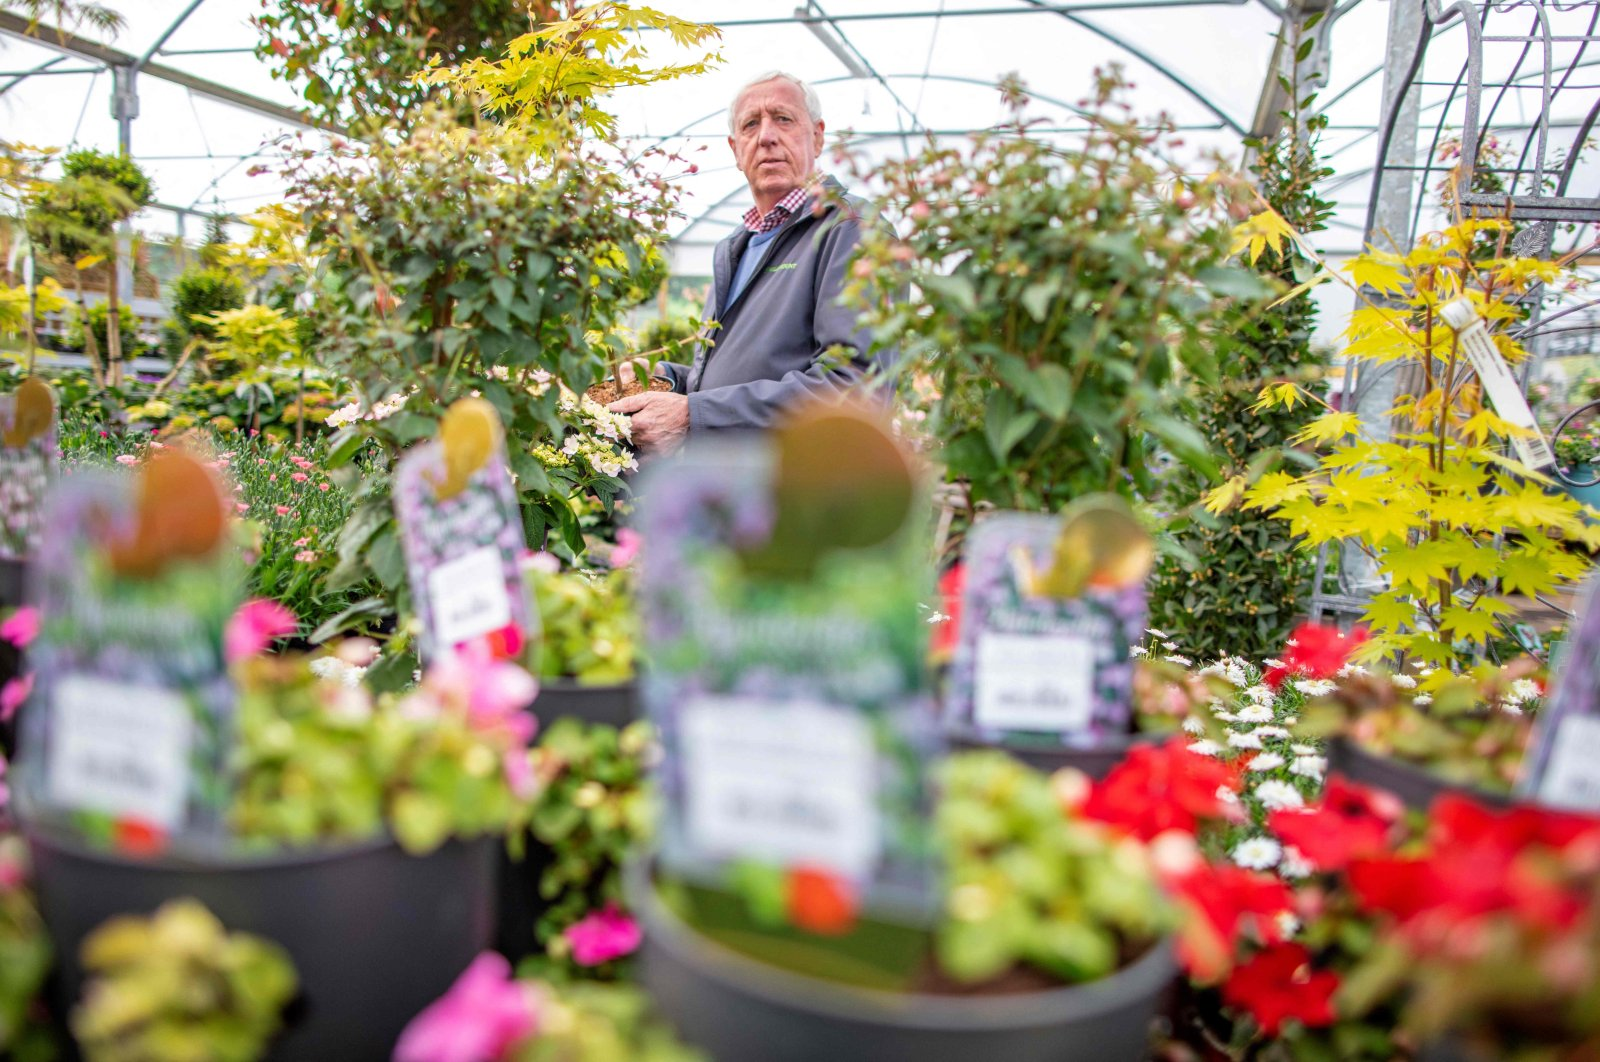 Owner Robin Mercer poses amongst flowering plants in a greenhouse at Hillmount Garden Centre in east Belfast, Northern Ireland, May 19, 2021. (AFP Photo)